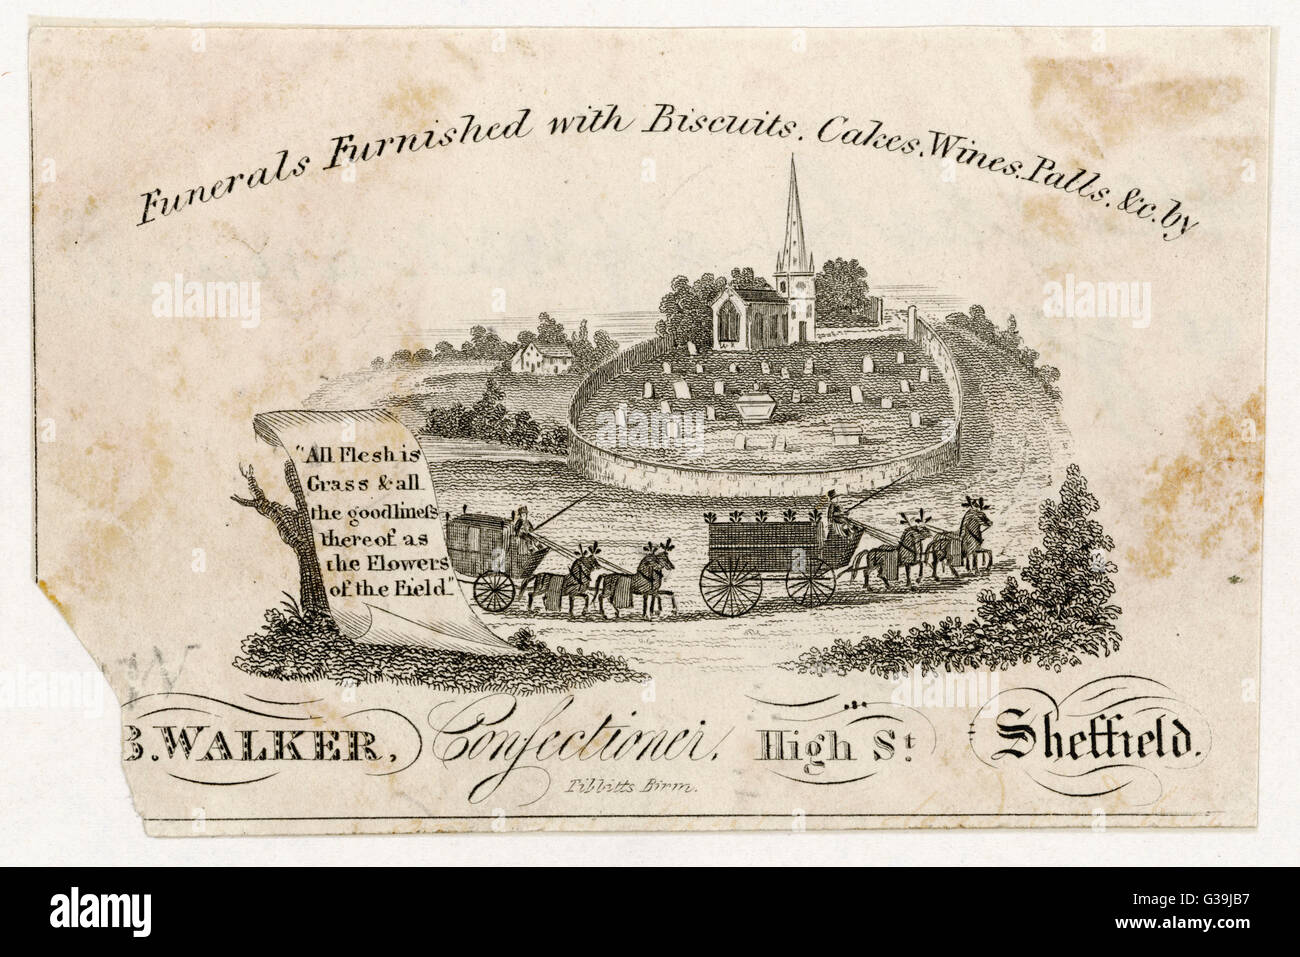 'Funerals furnished with  Biscuits, Cakes, Wines, Palls  &c' by Walker, Confectioner,  of Sheffield, - Stock Image